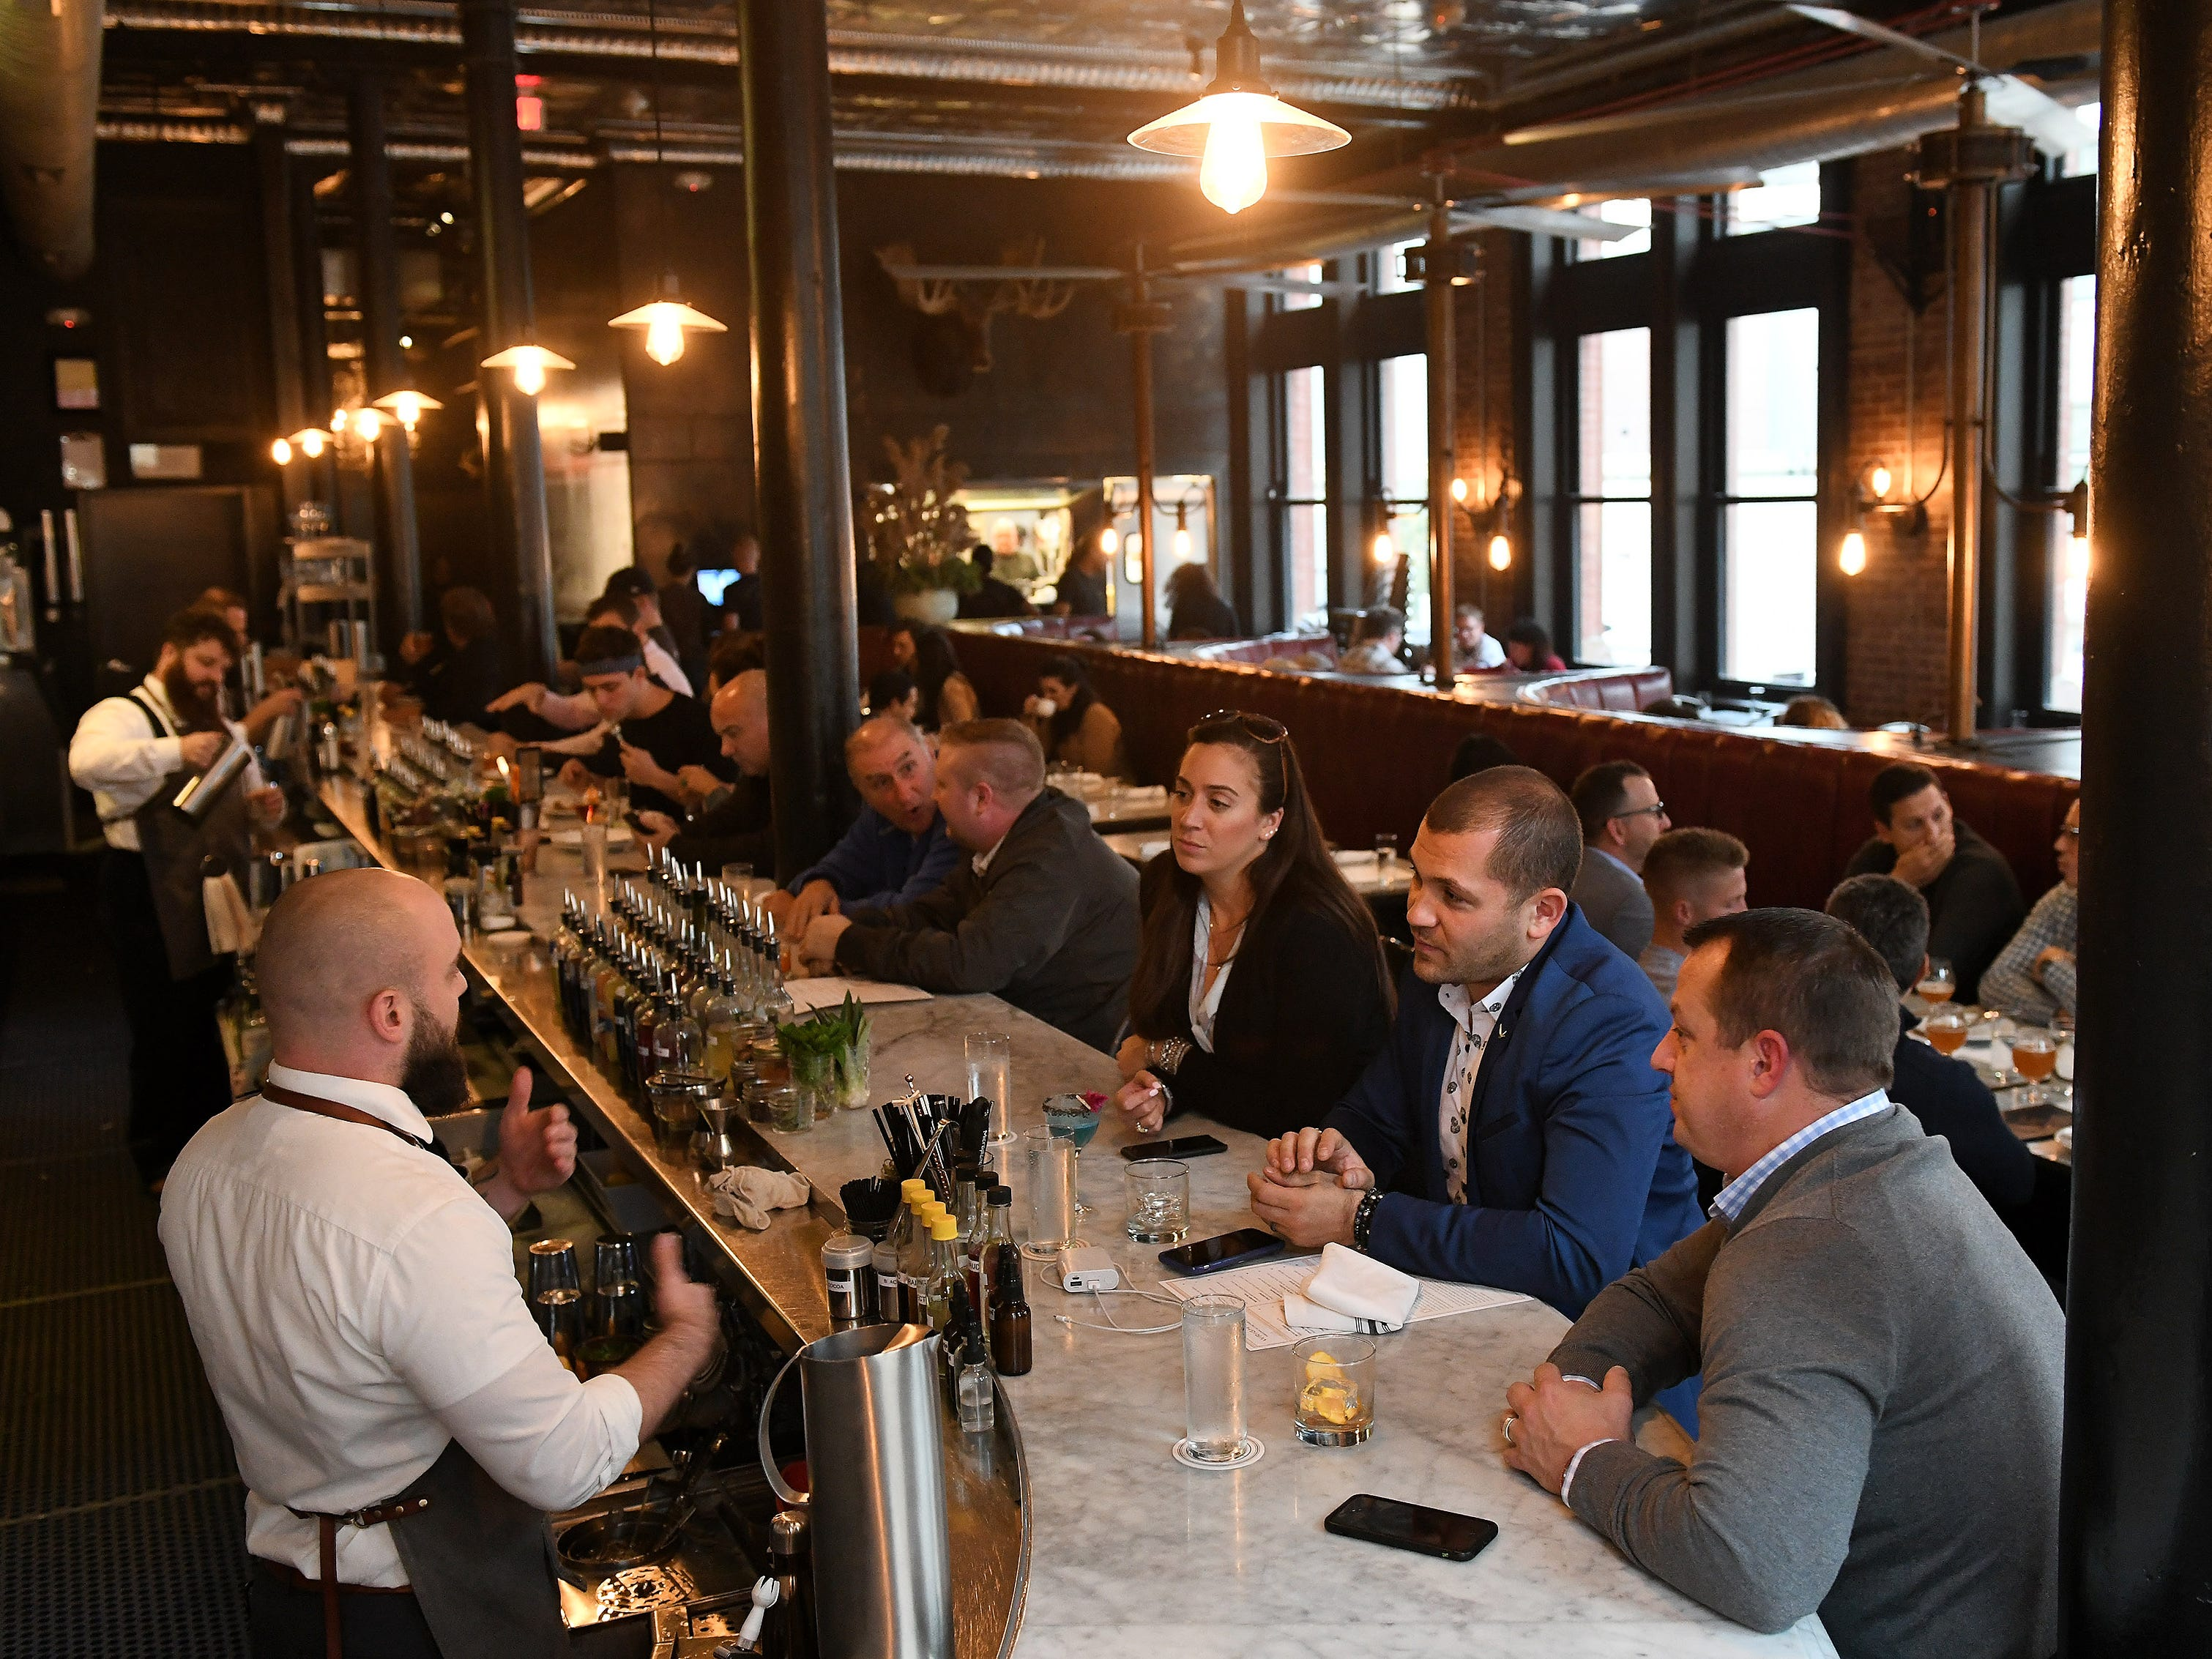 Bar manager Burch, left, talks with, from right, Paul Wolfe of Royal Oak, Emile Chaillot of Chicago and Brittany Siravo of Royal Oak at Wright & Co. in Detroit on Oct 11, 2018.